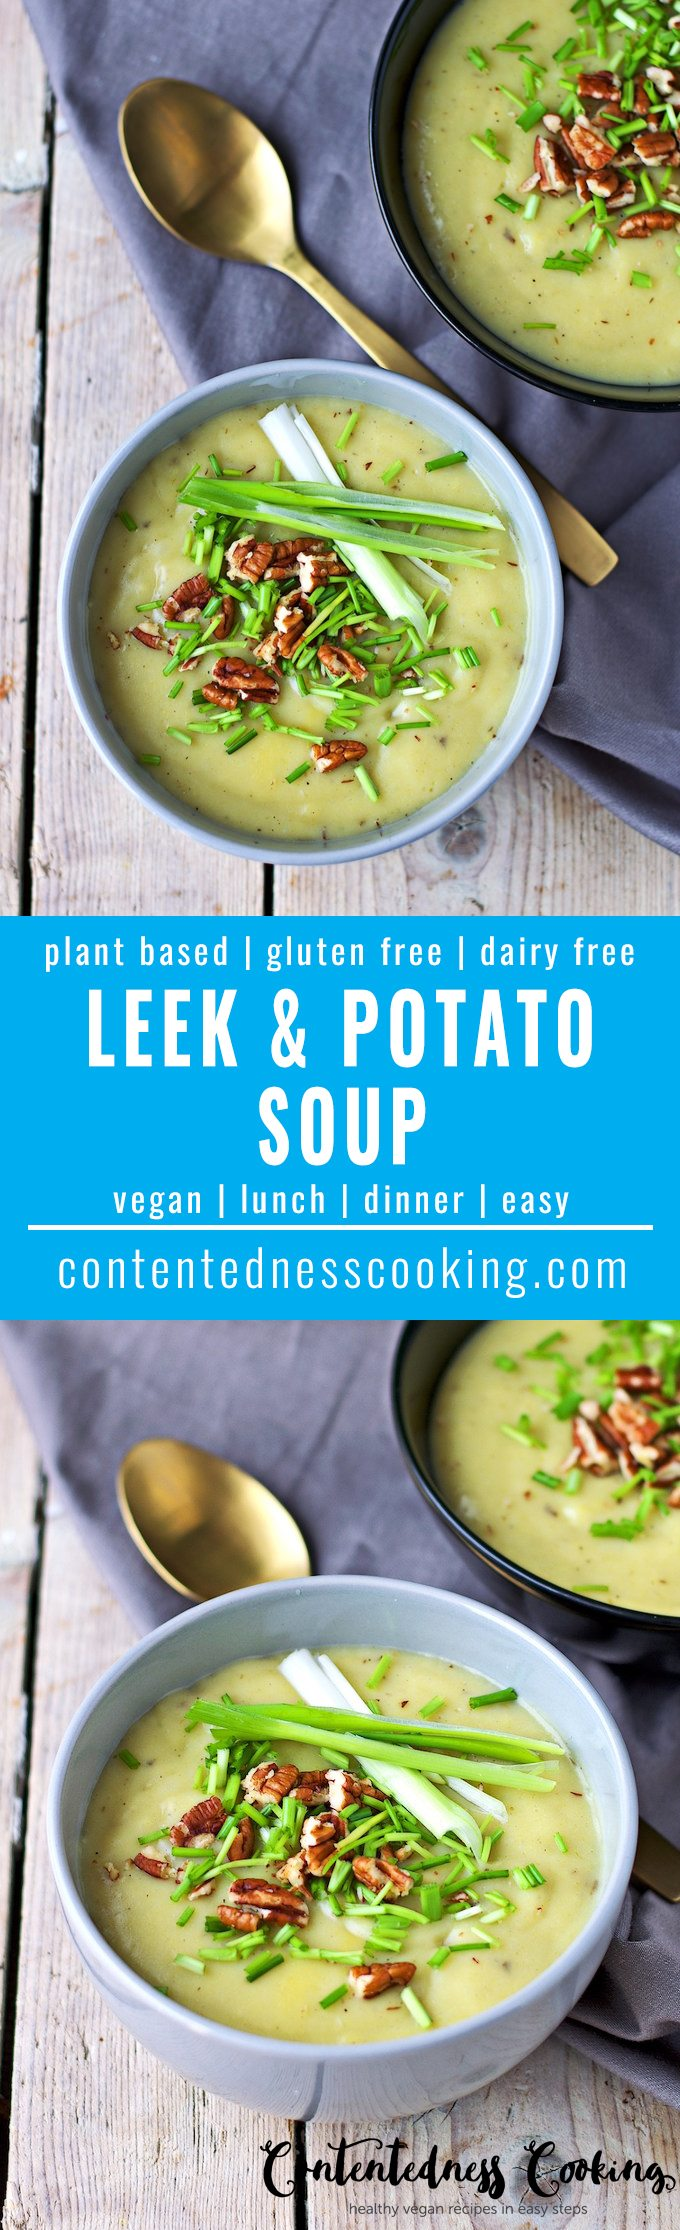 Leek and Potato Soup | #vegan #glutenfree #contentednesscooking #plantbased #dairyfree